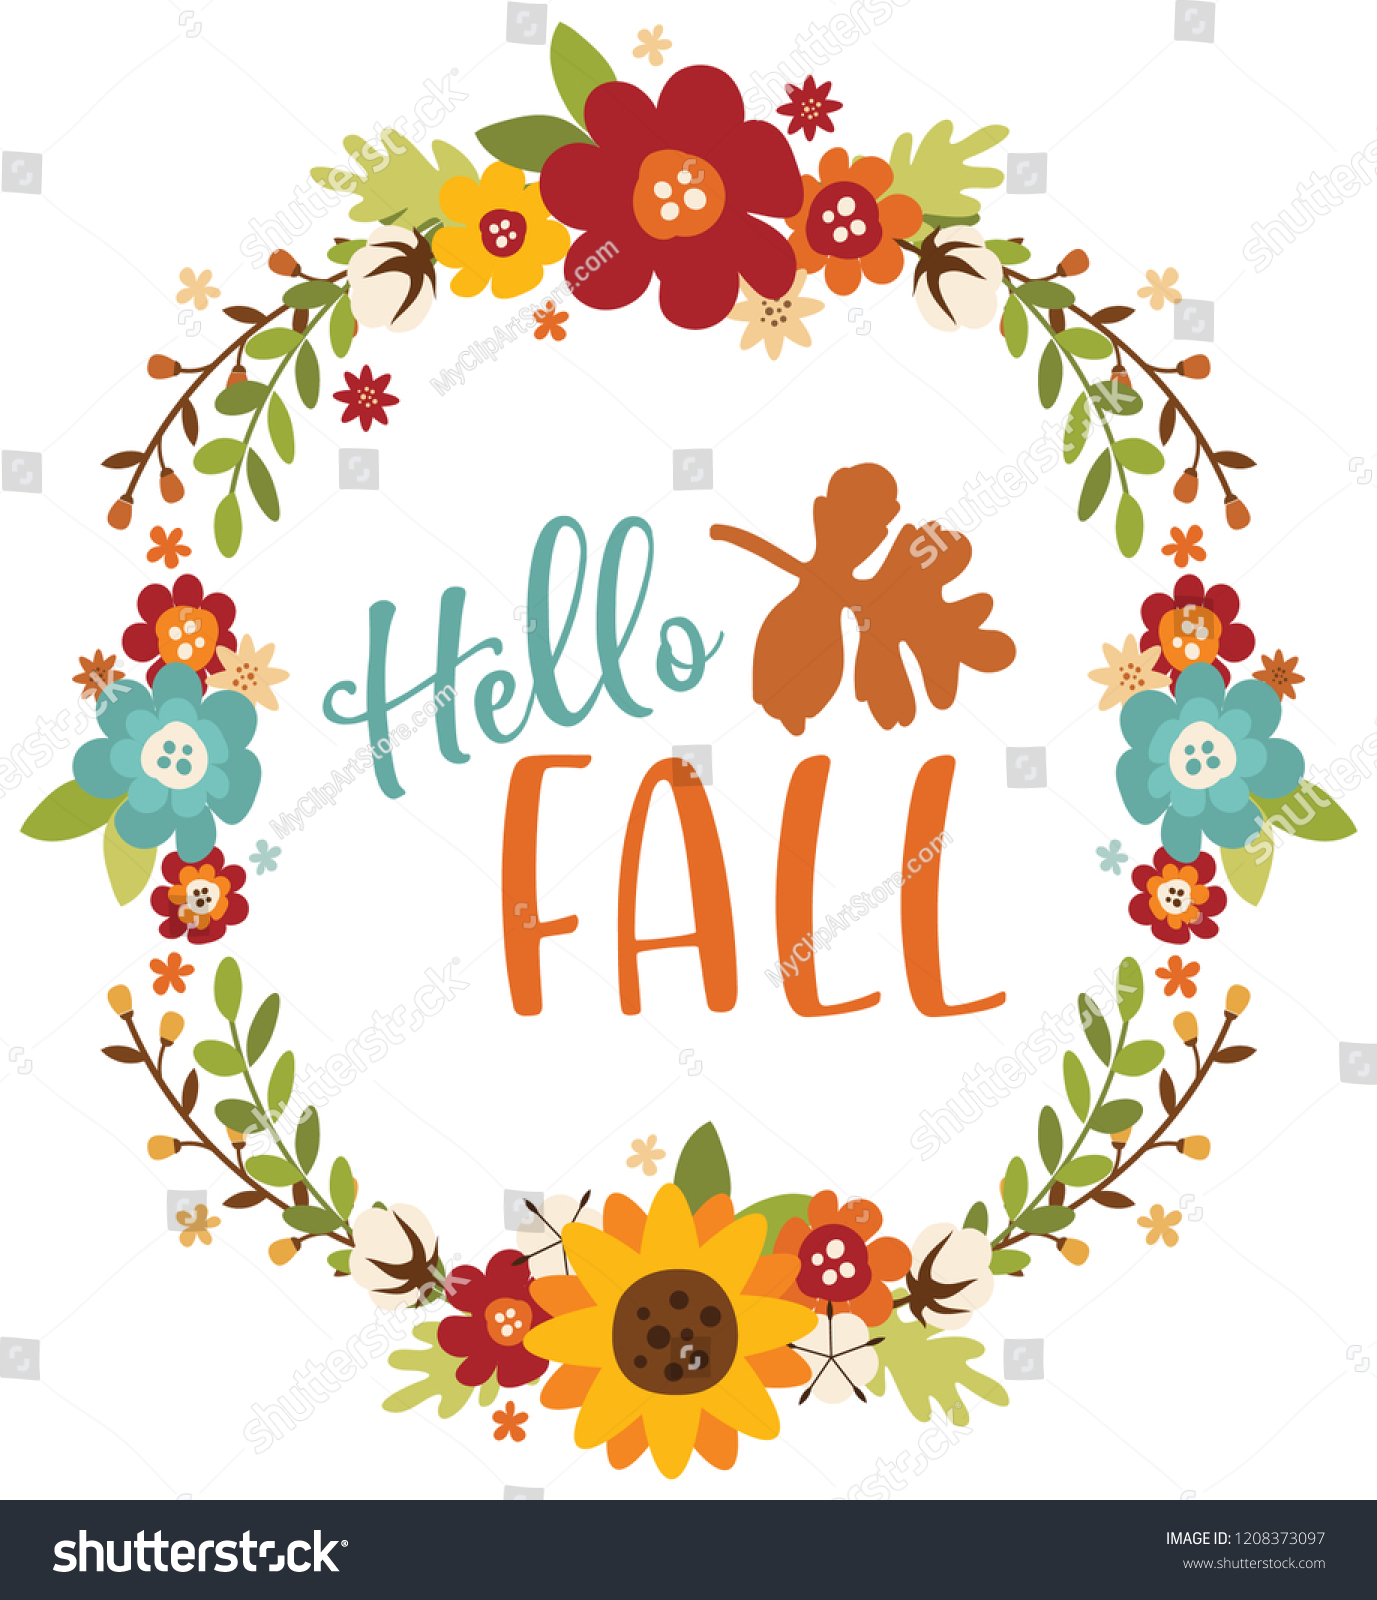 Hello Fall Floral Wreath Stock Vector Royalty Free 1208373097